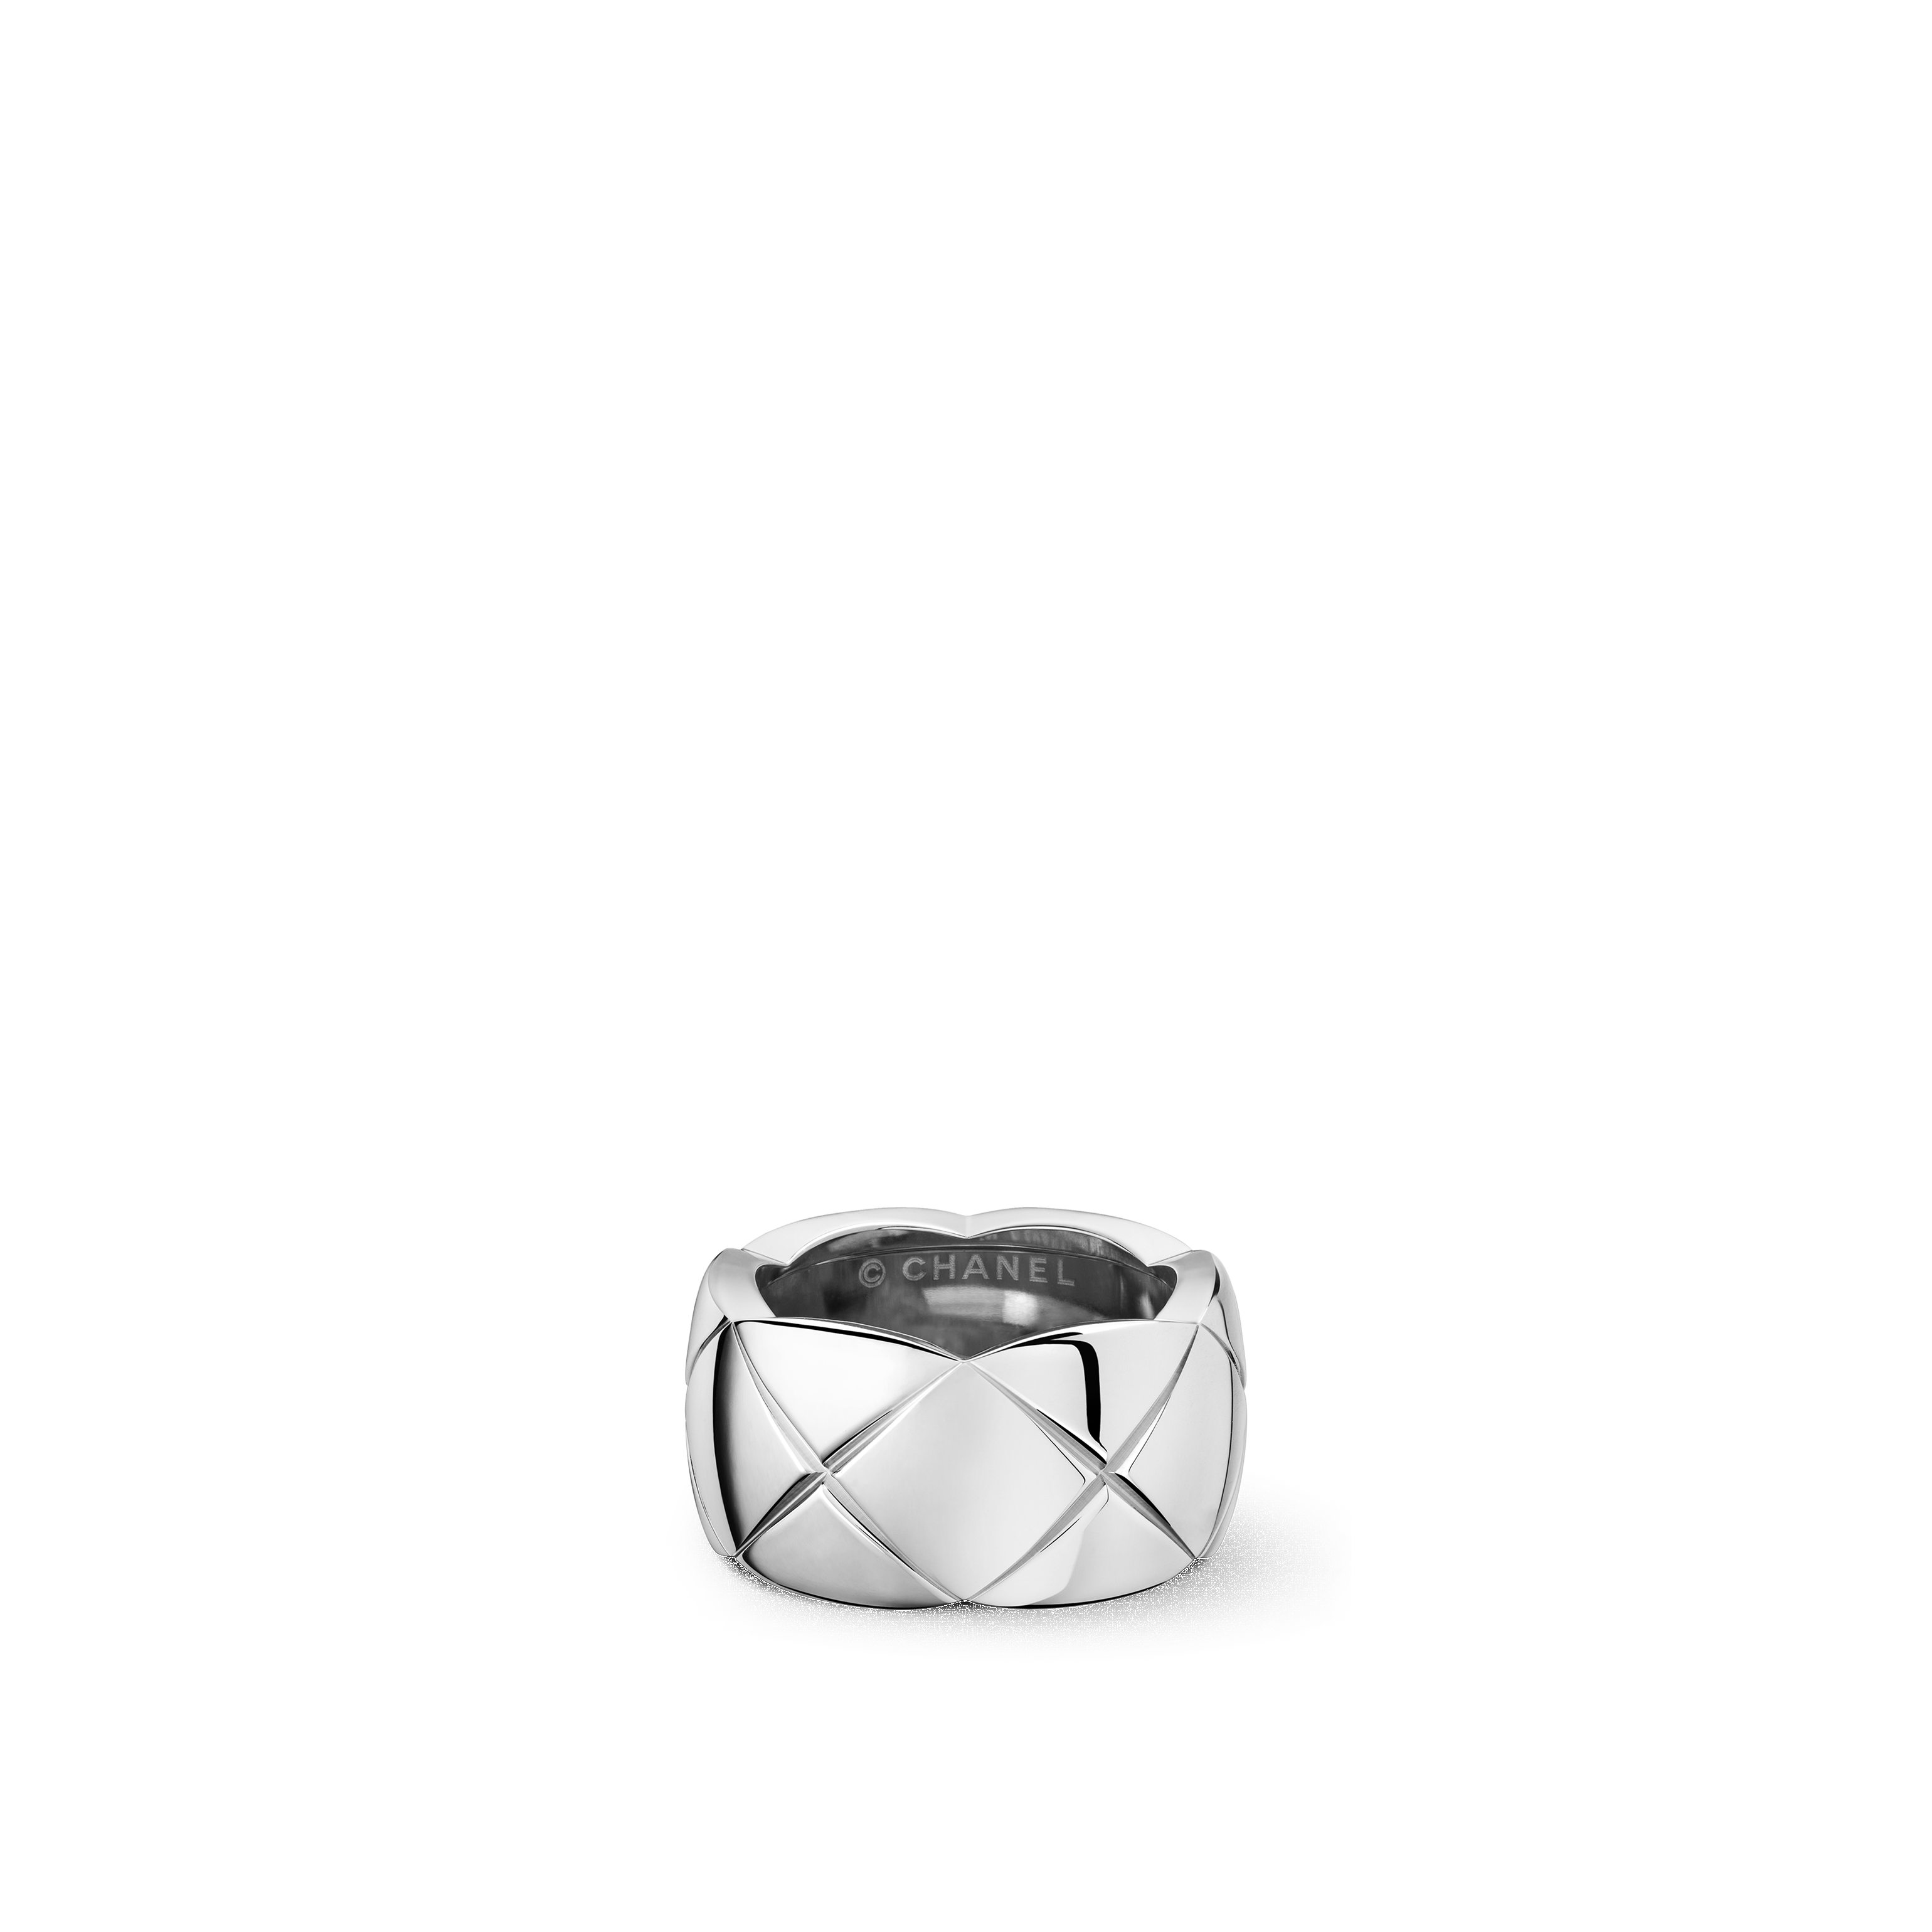 Coco Crush ring - Quilted motif, large version, 18K white gold - CHANEL - Default view - see standard sized version